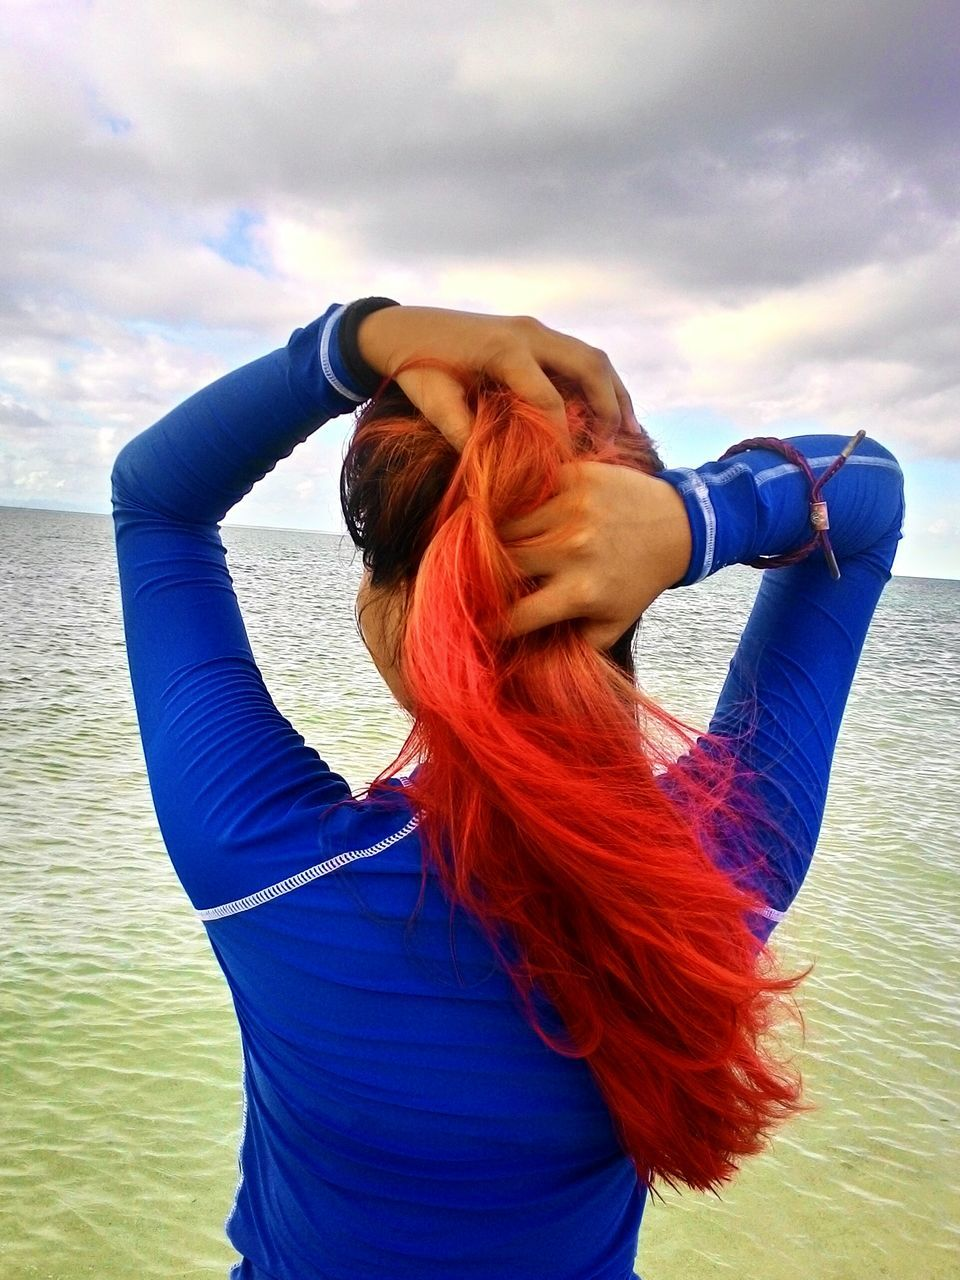 redhead, sea, sky, water, one person, cloud - sky, real people, horizon over water, rear view, dyed hair, standing, leisure activity, outdoors, day, nature, lifestyles, red, beauty in nature, scenics, young adult, young women